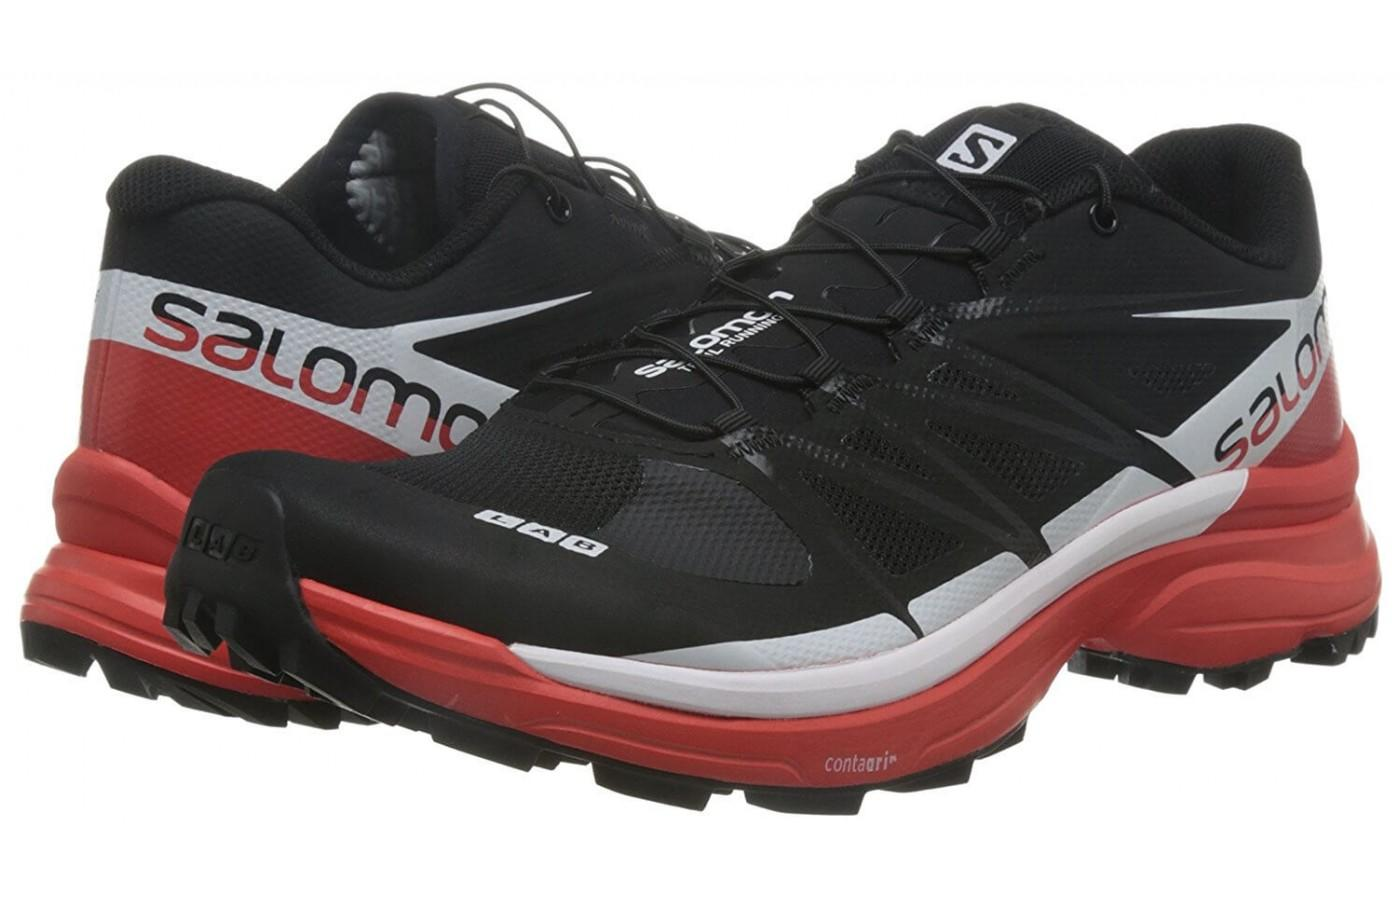 A solid pair of racers for trails